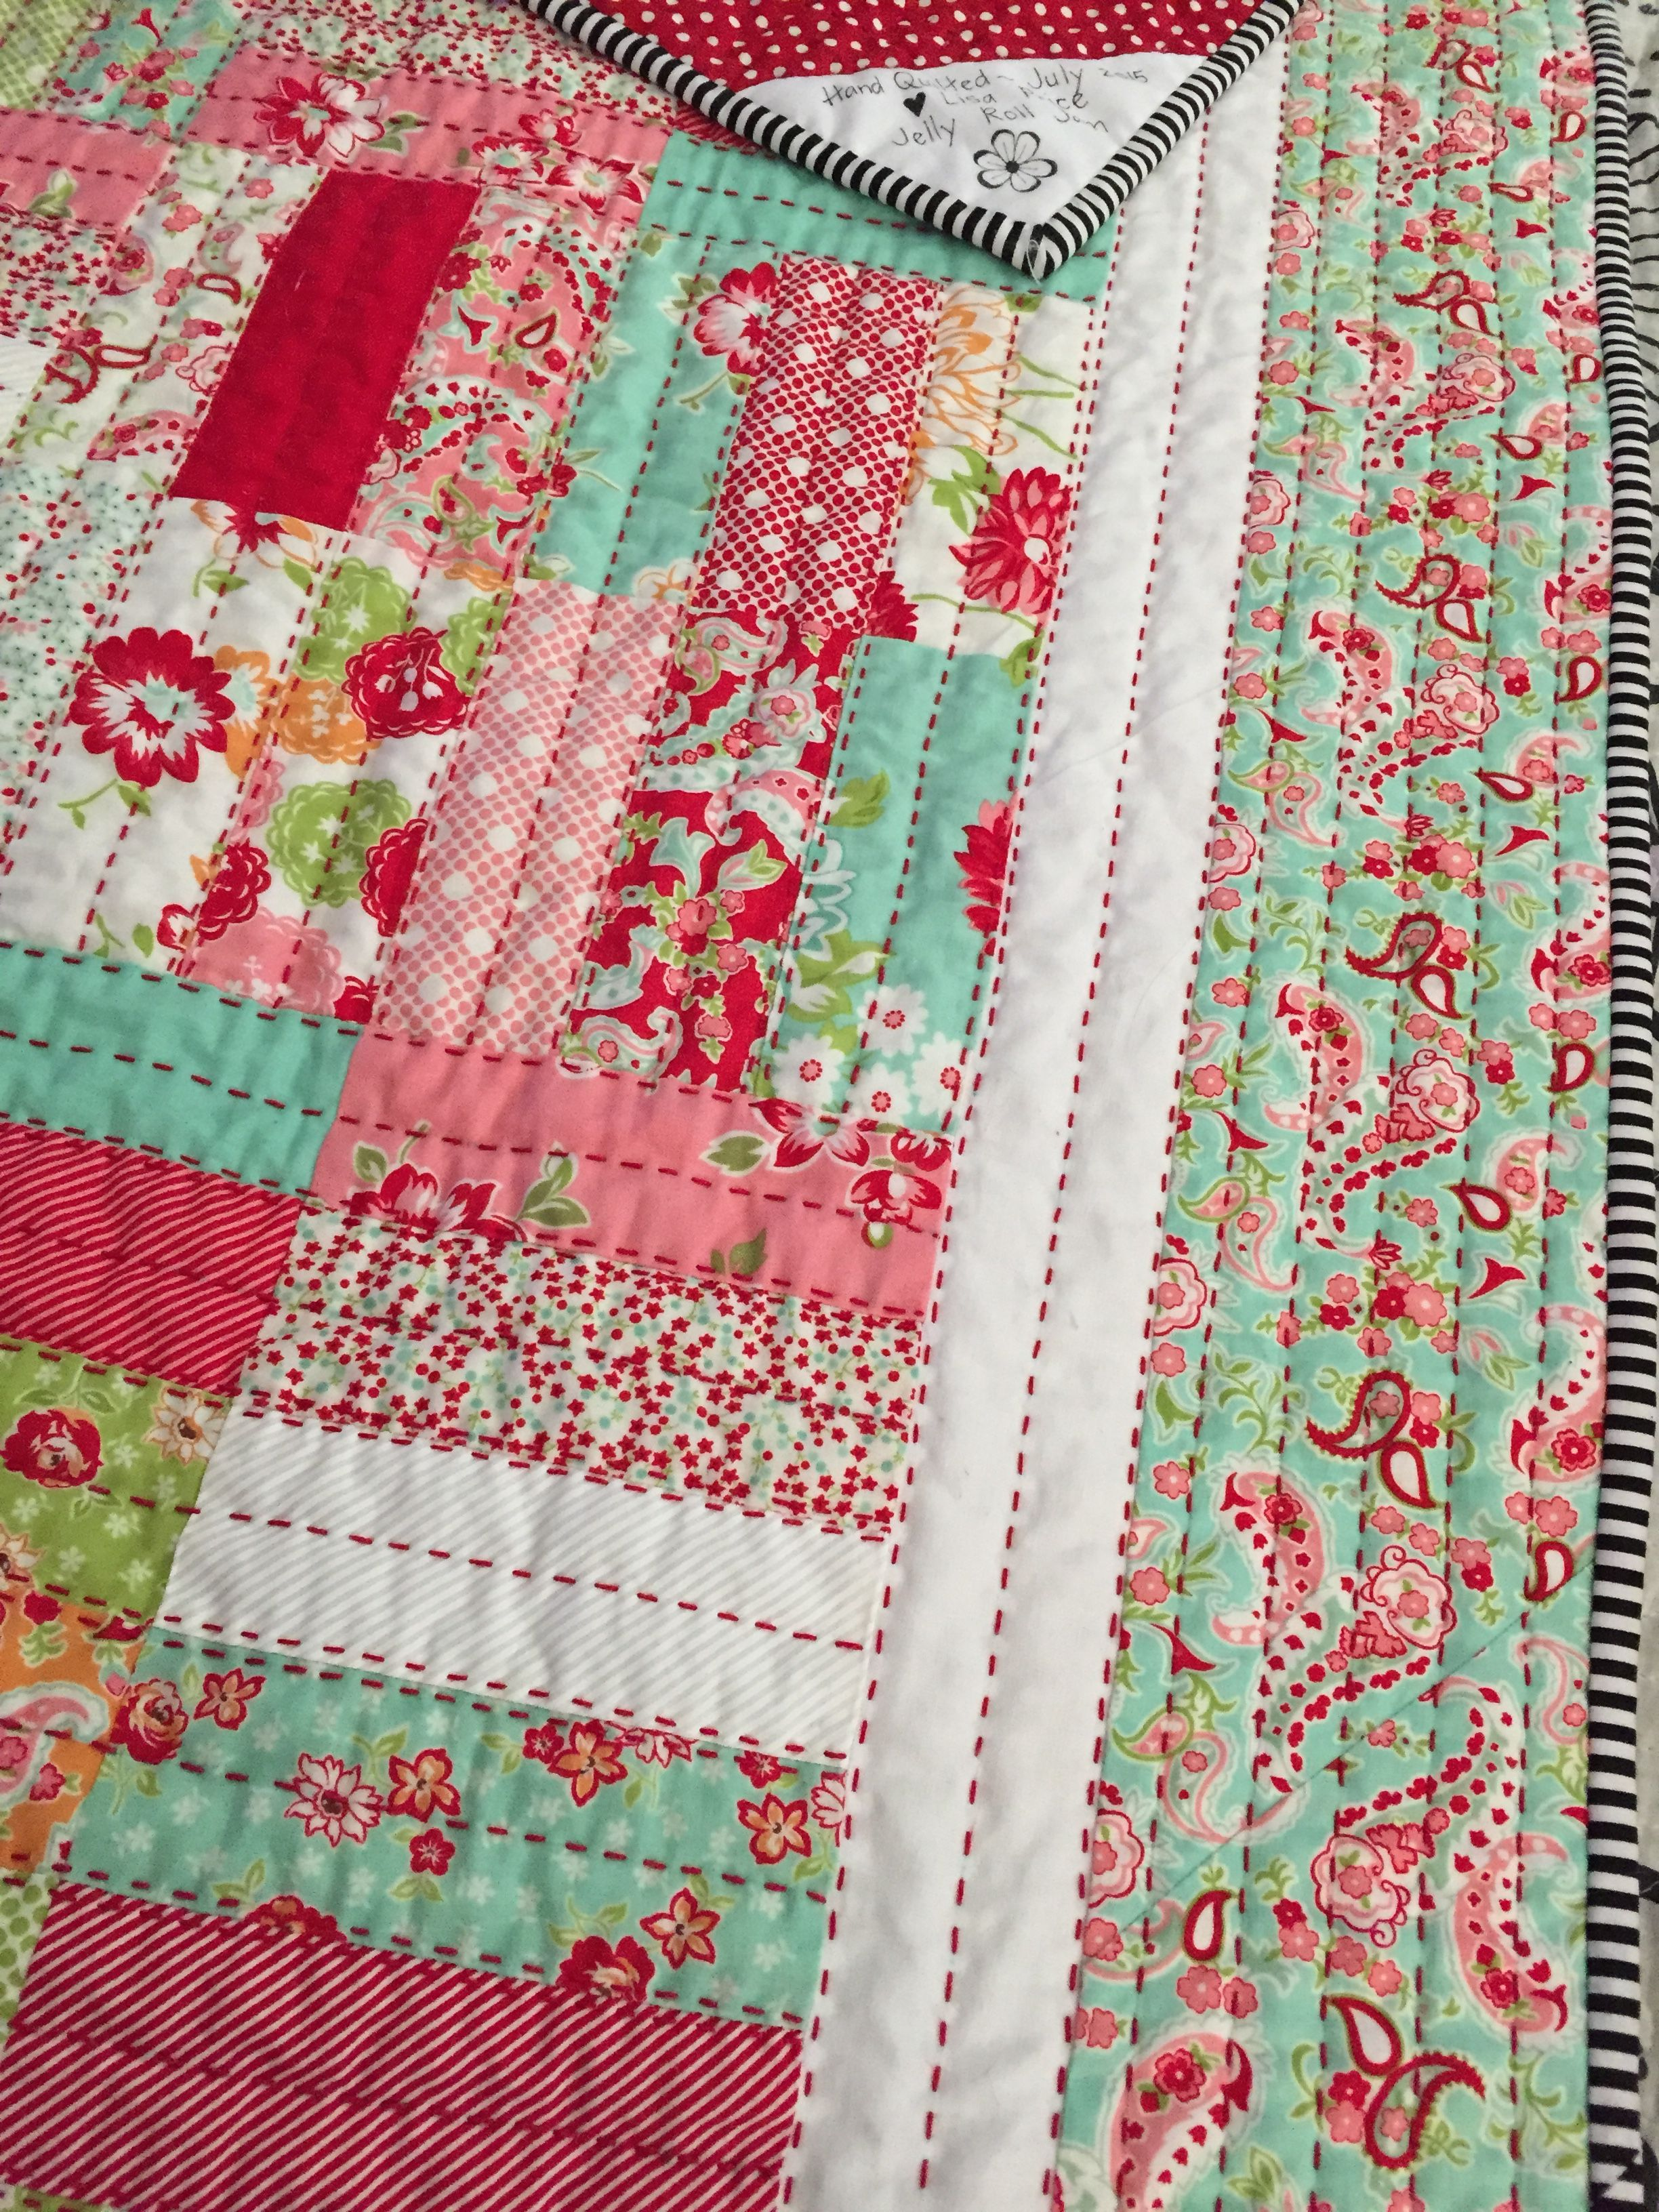 Big stitch using Jelly Roll Jam pattern in Scrumptious fabric by Bonnie & Camille Hand quilted ...